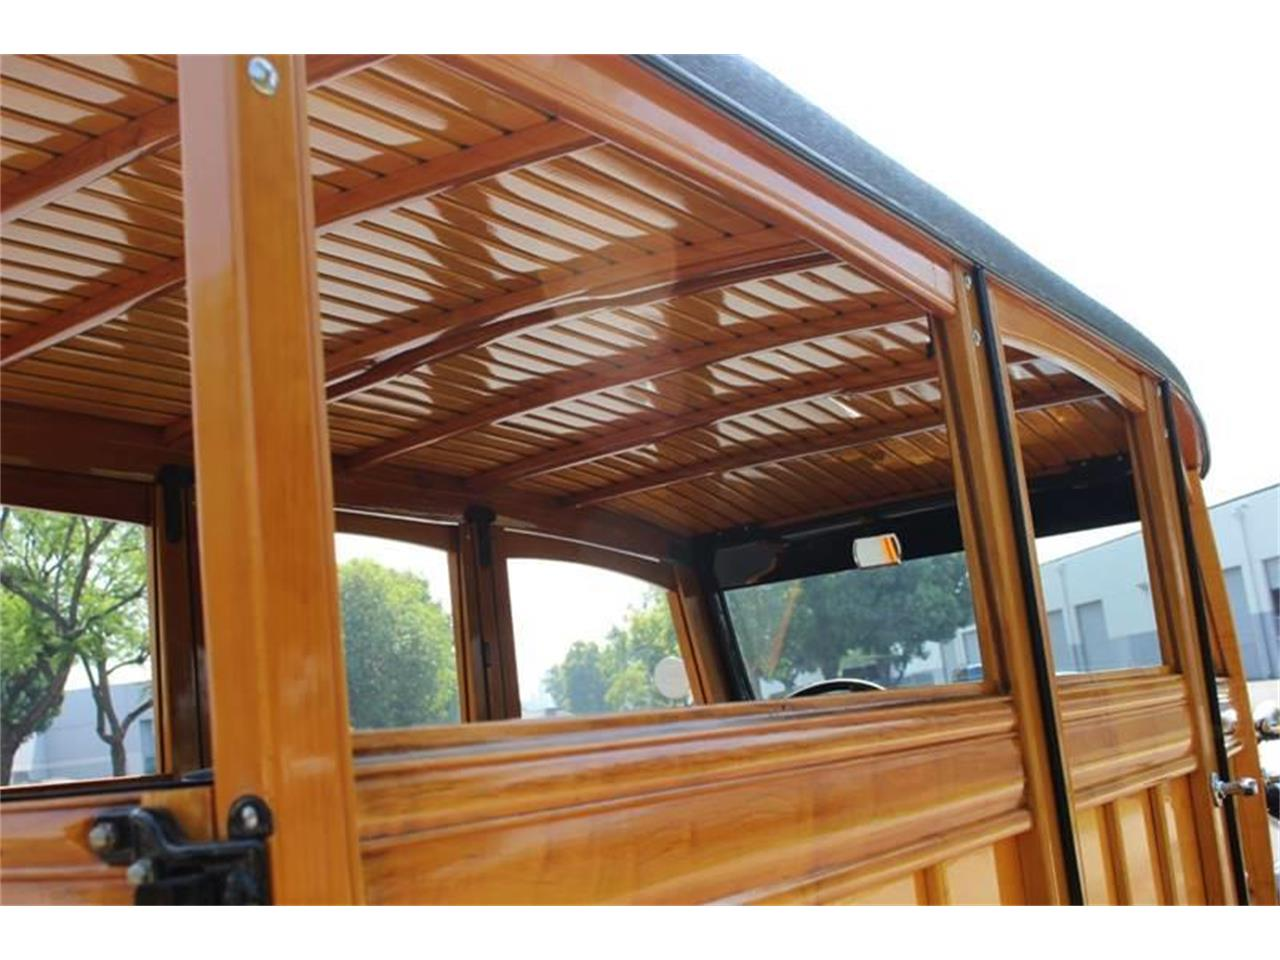 Large Picture of Classic 1934 Woody Wagon located in La Verne California Auction Vehicle - LDYJ